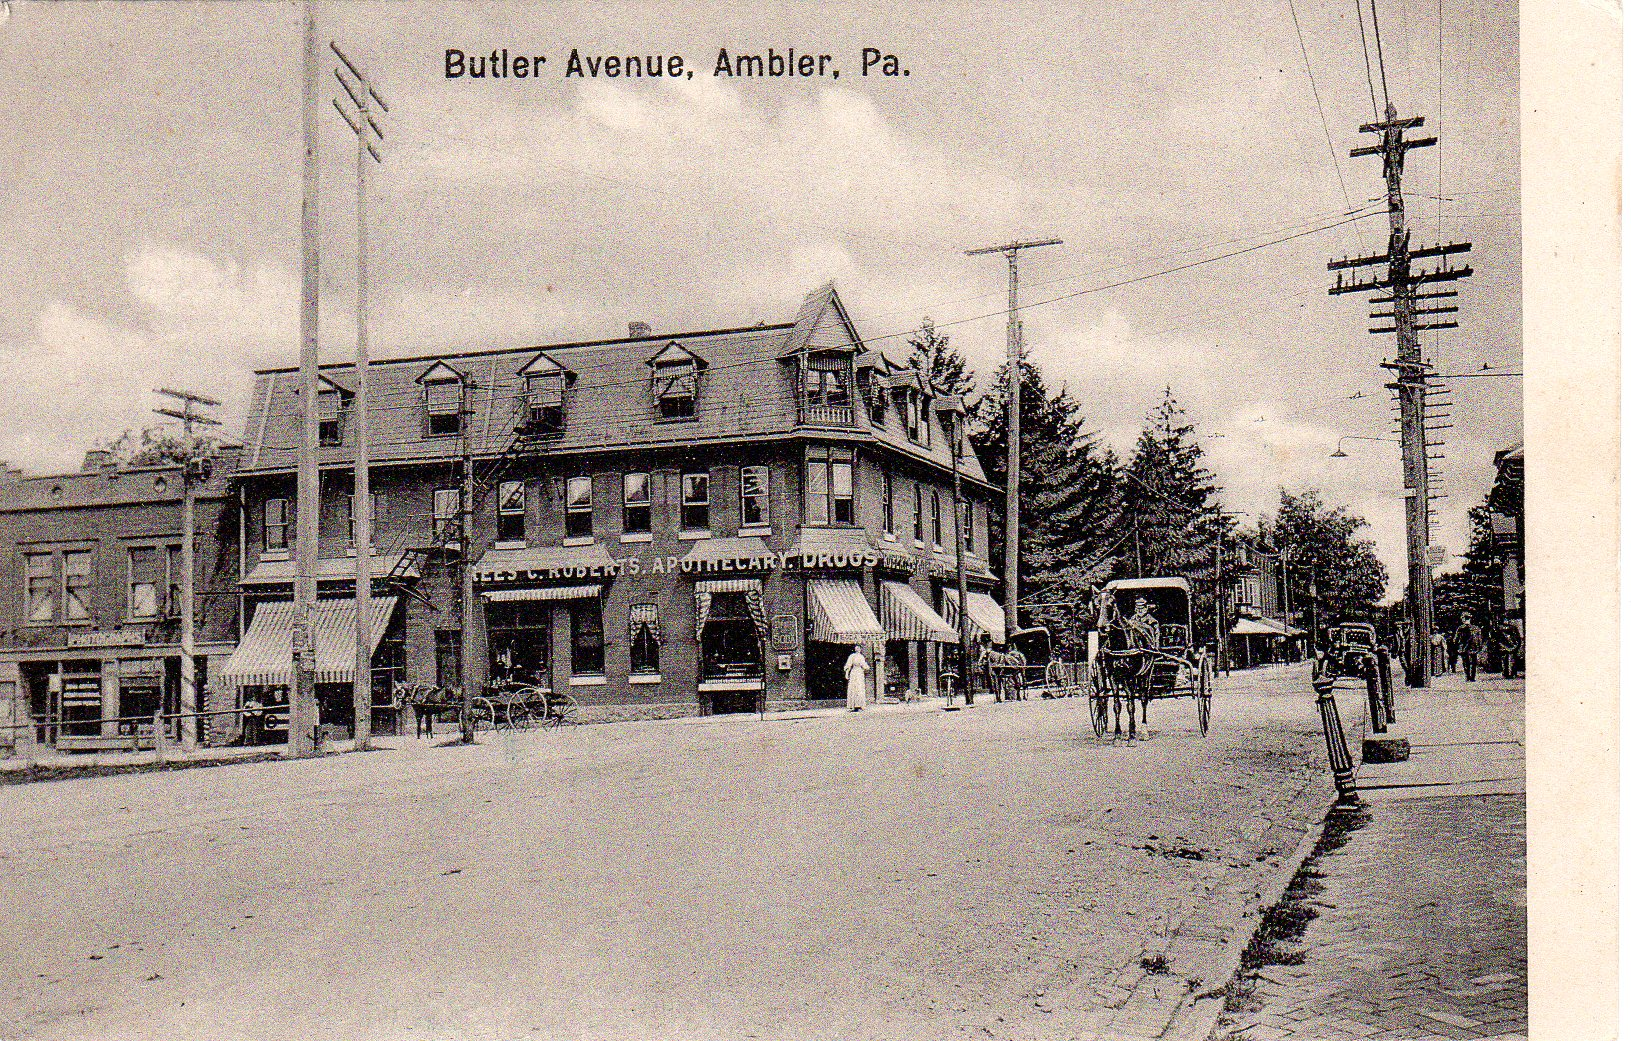 Post Card Collection (E Simon)_2682_01_Butler Ave, Ambler, Pa